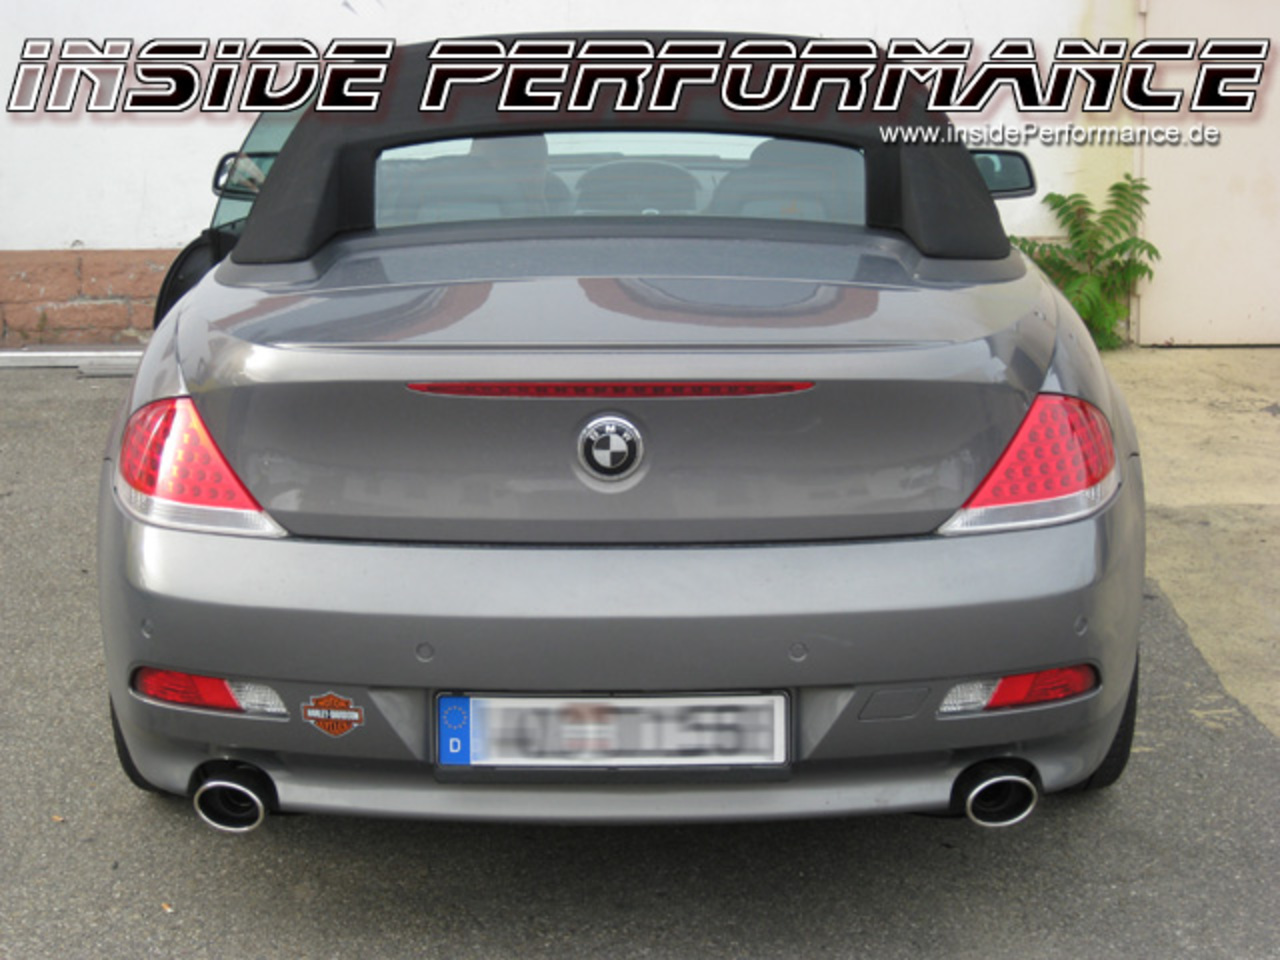 BMW 645i cabrio. View Download Wallpaper. 640x480. Comments